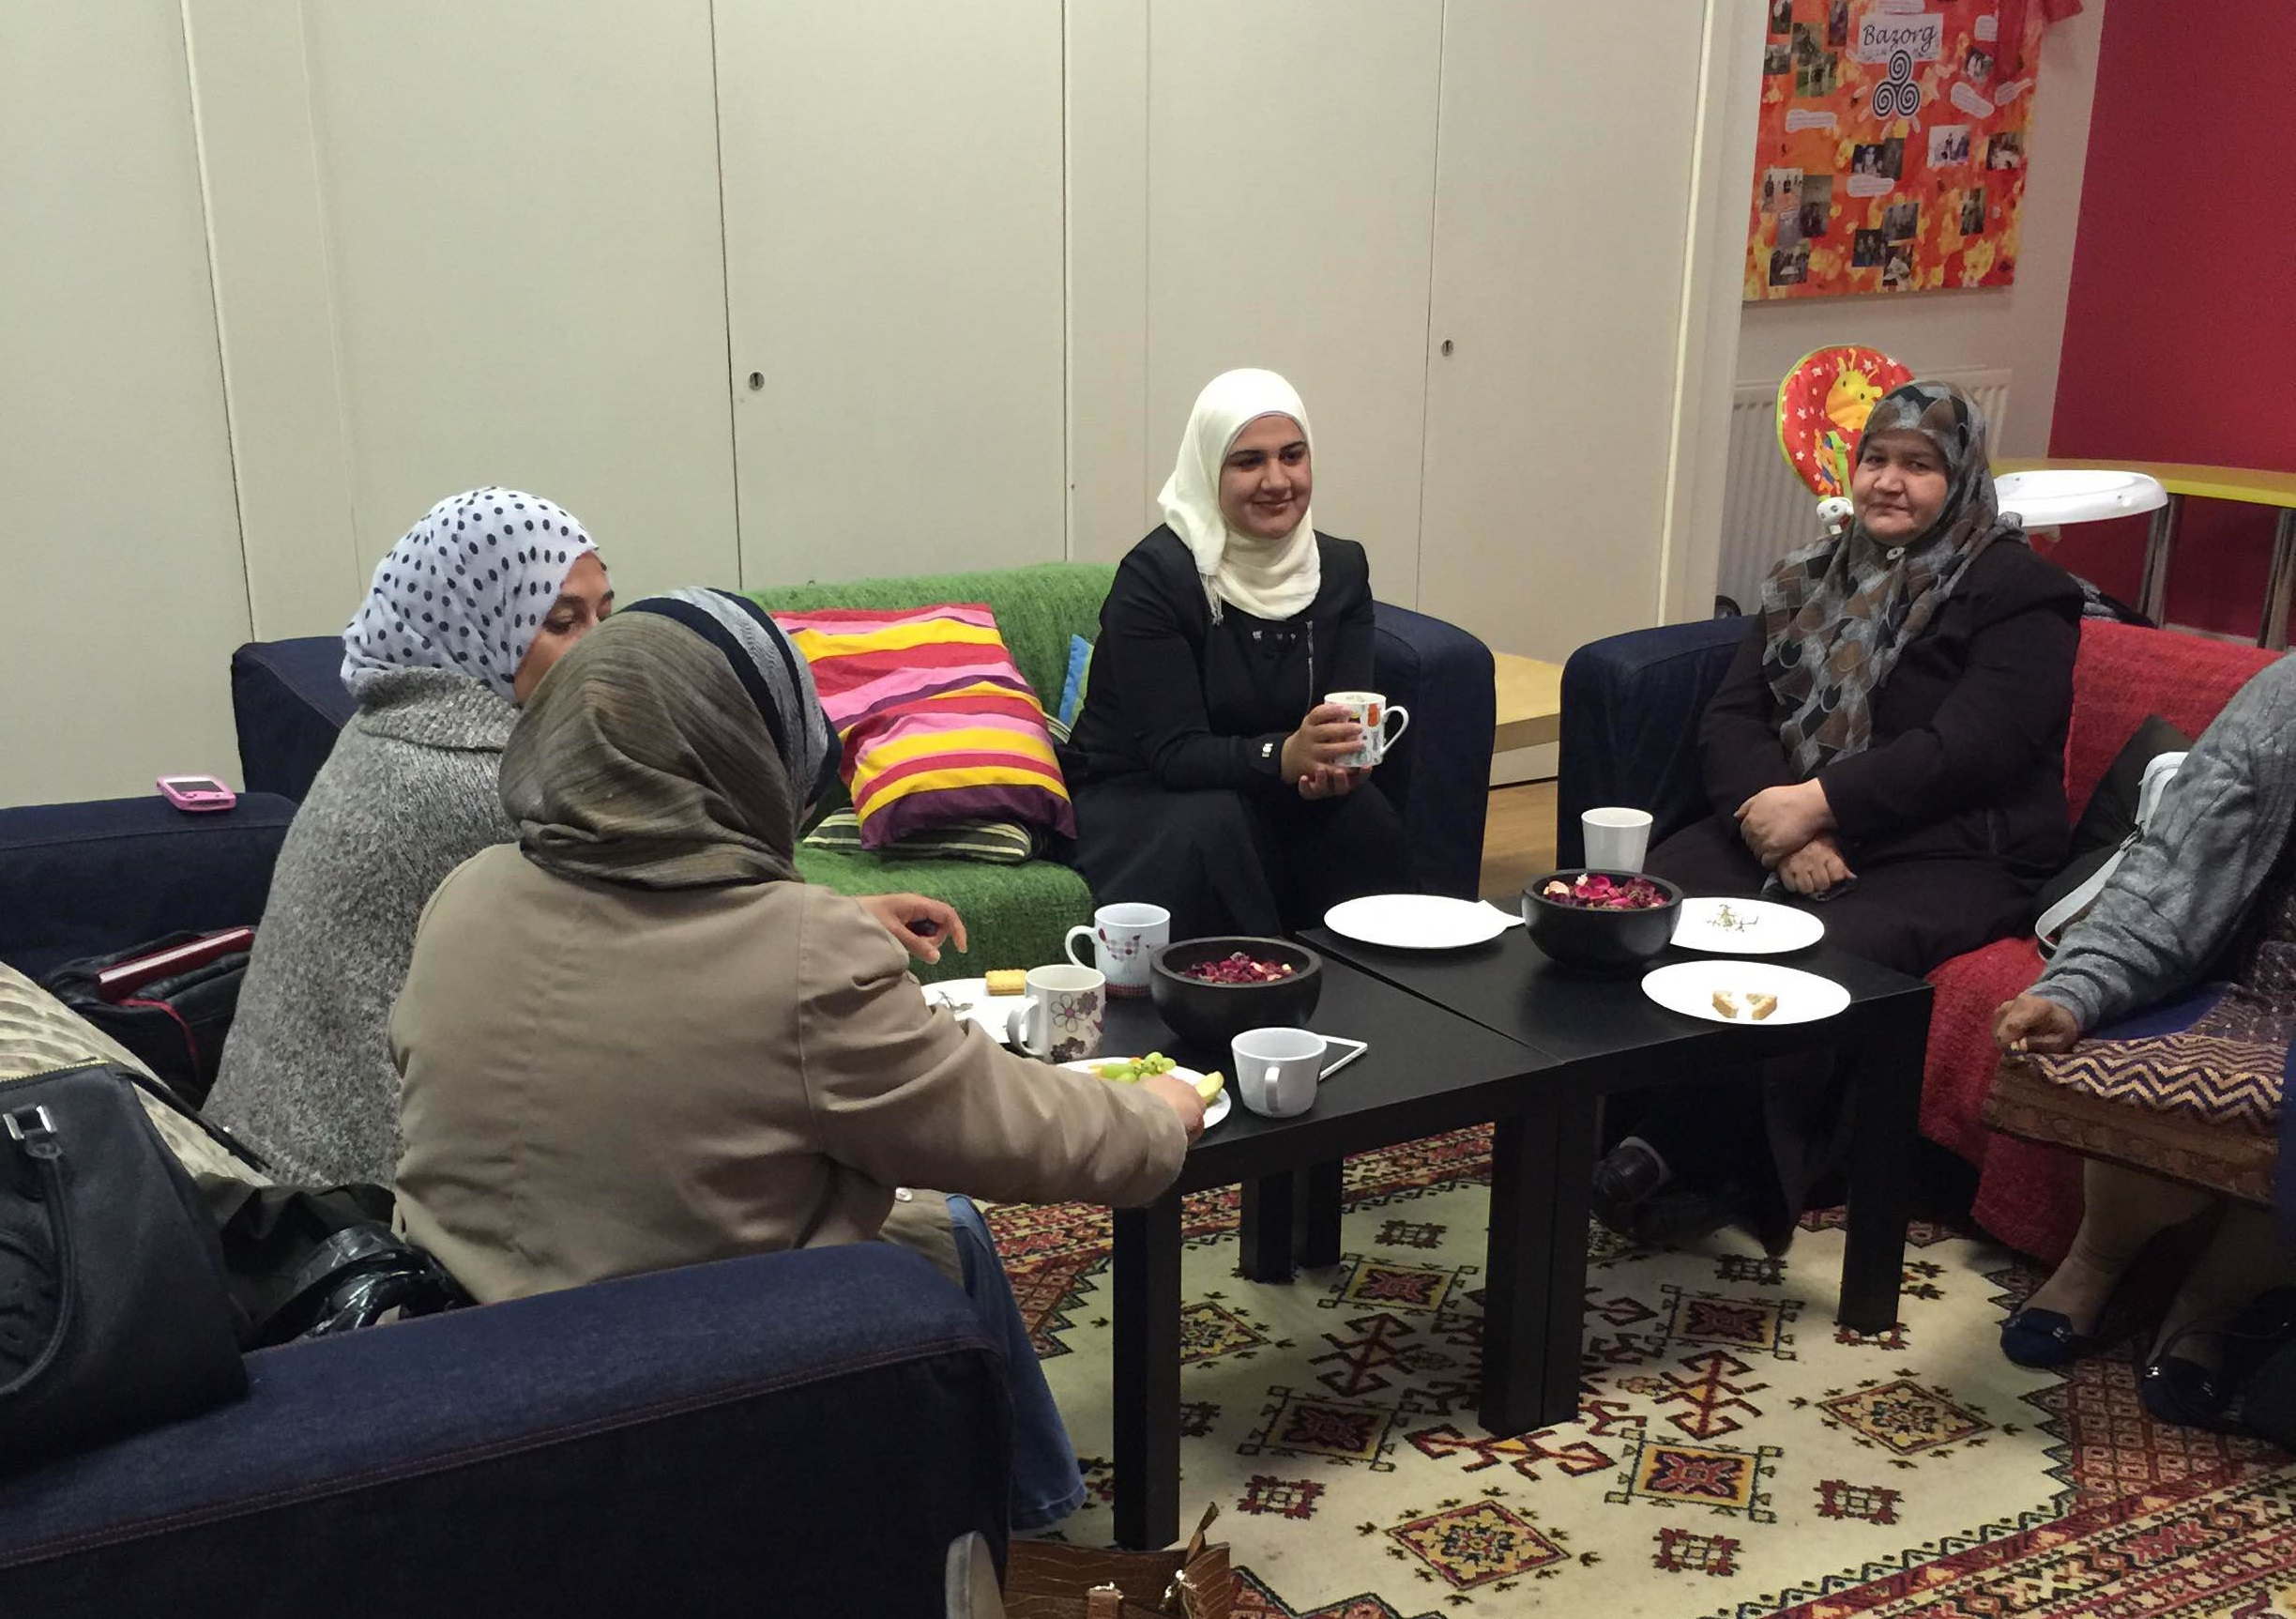 Chit Chat women's social group Dundee